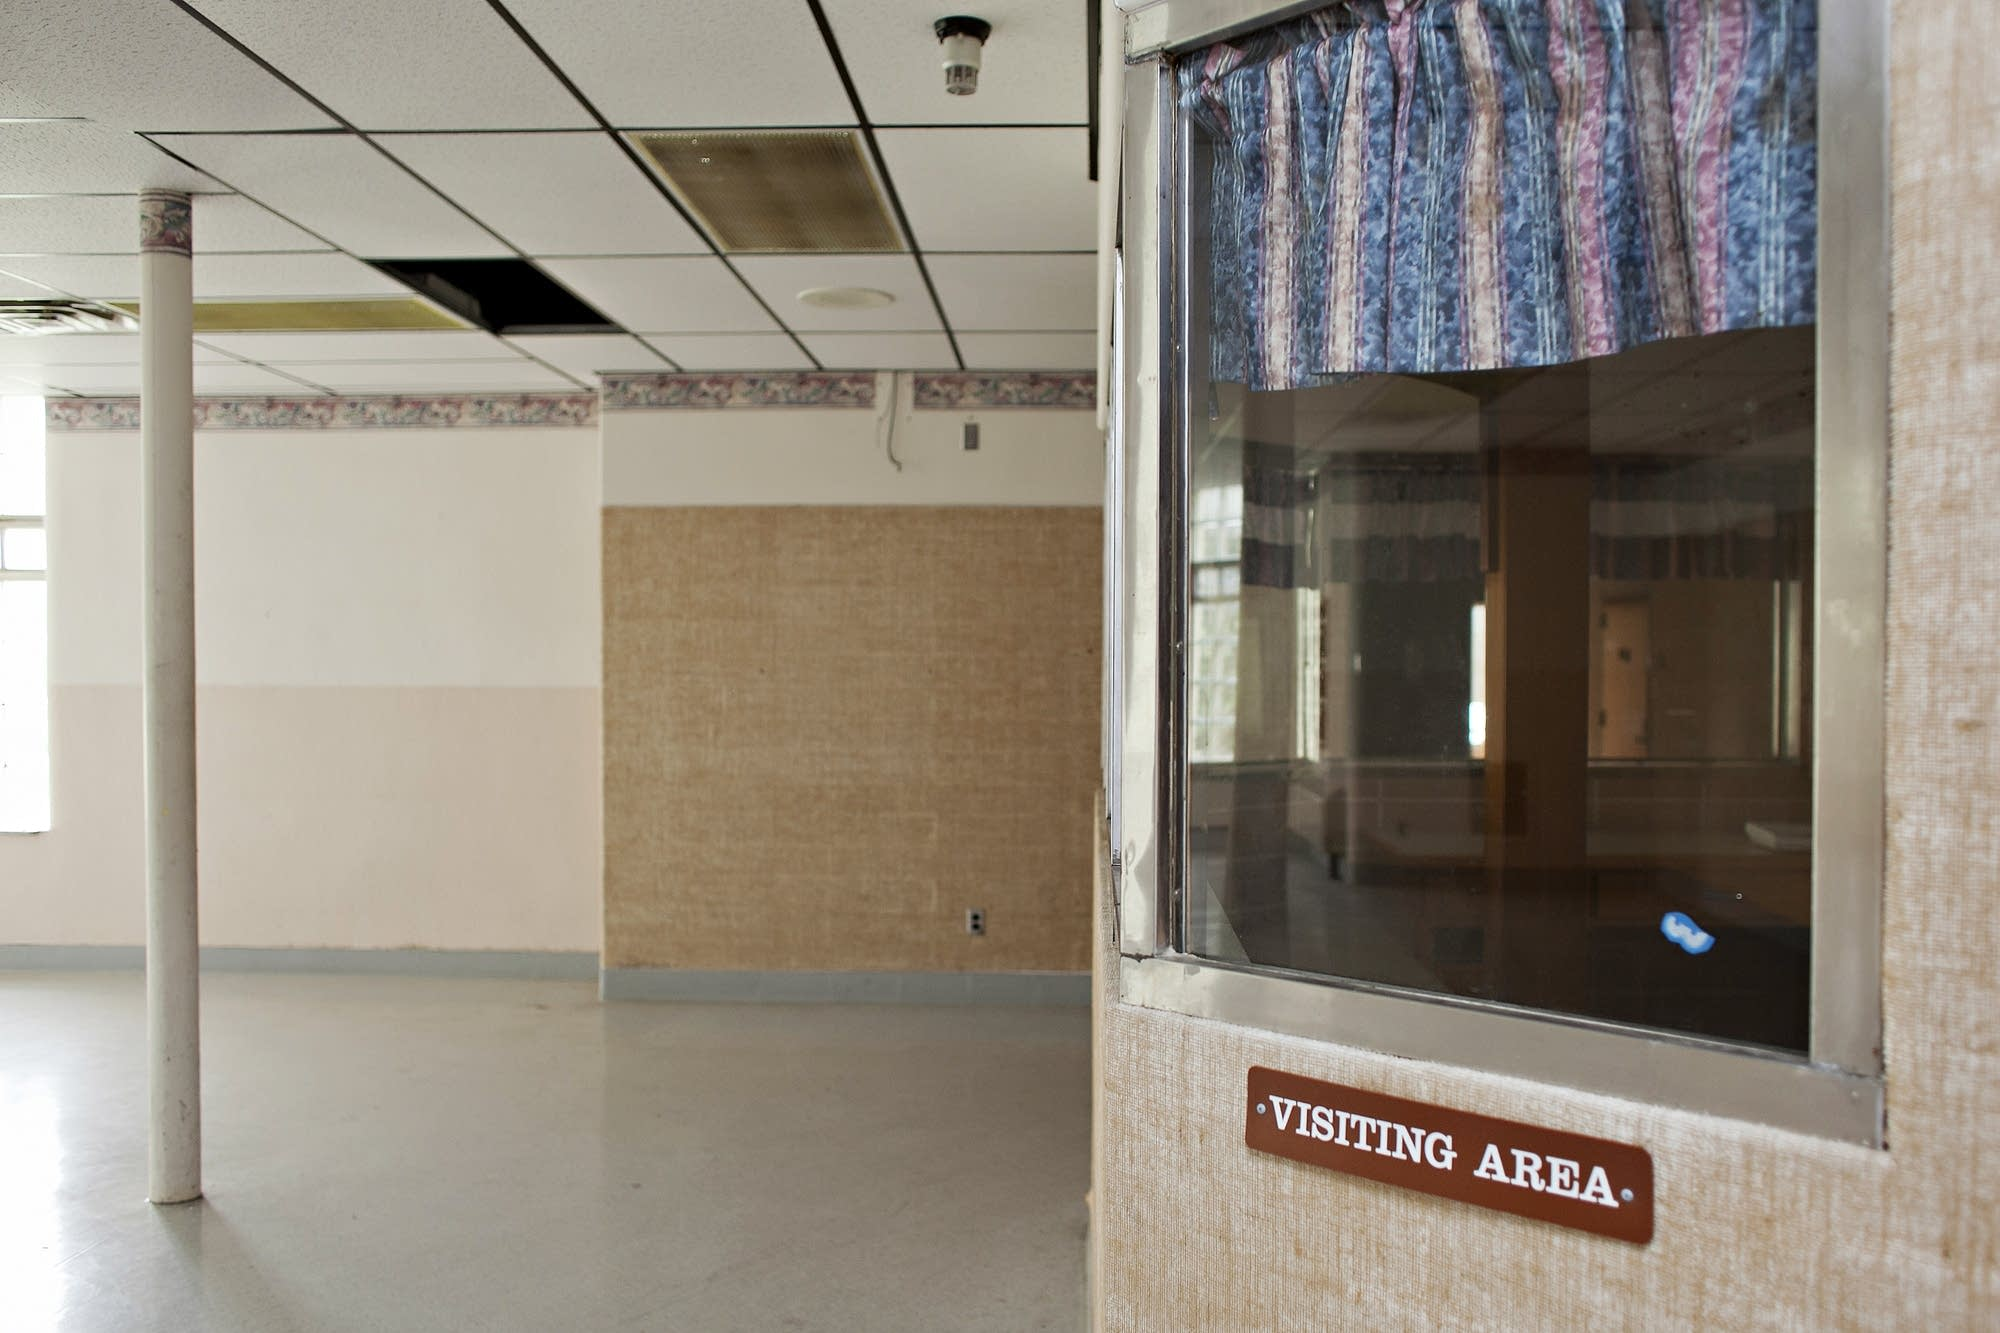 A visiting area is seen inside the former state mental health hospital.